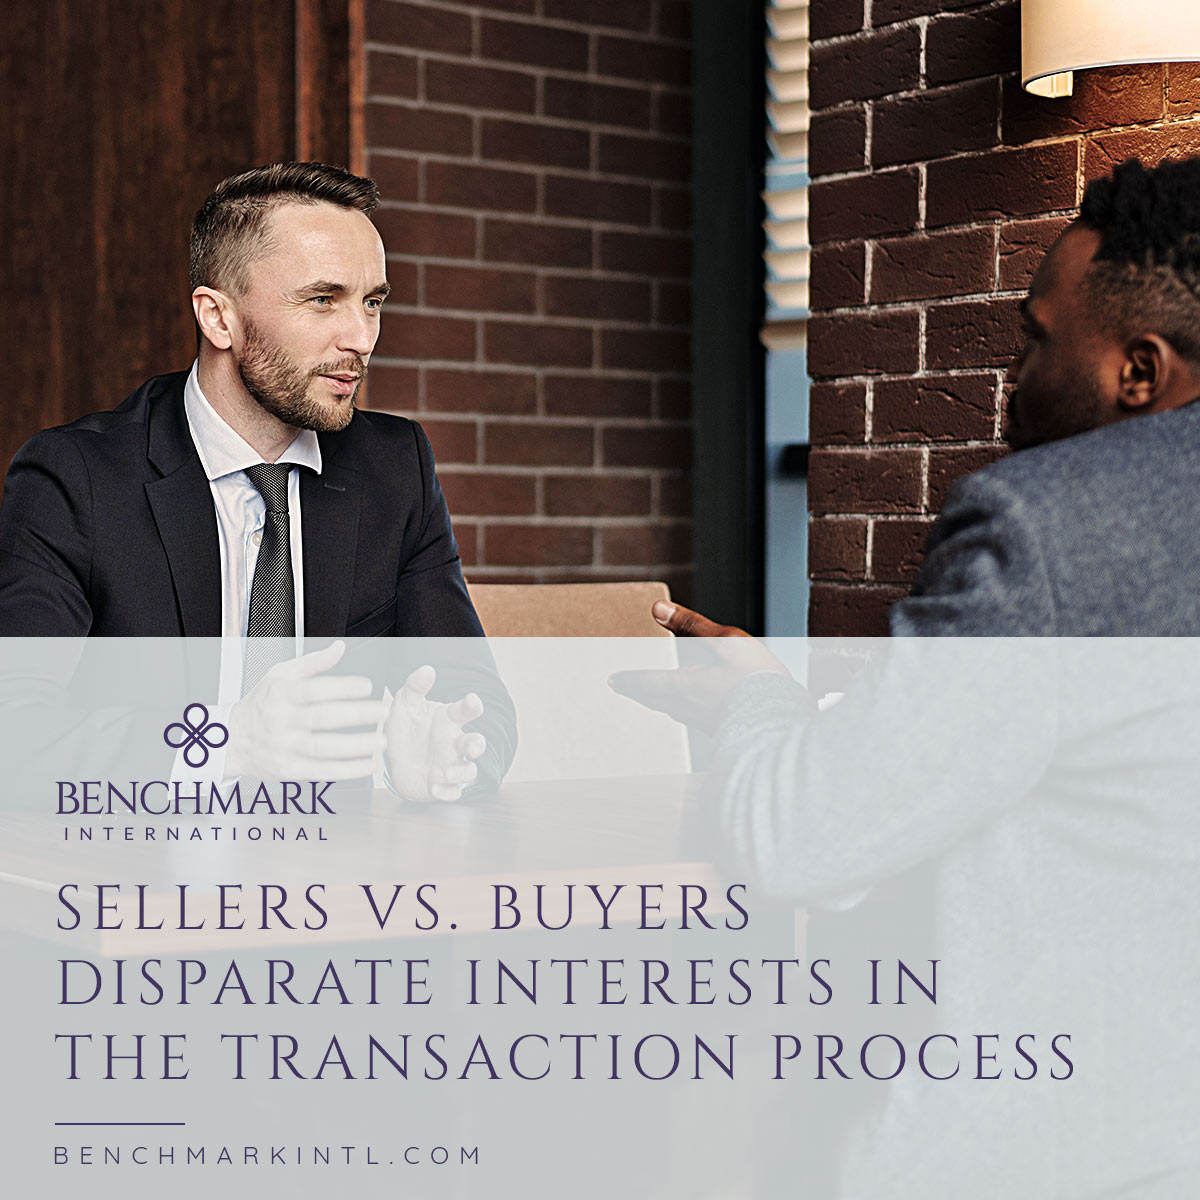 Seller_vs_Buyer_Postions_In_Negotiating_An_Acquistion_Social-2